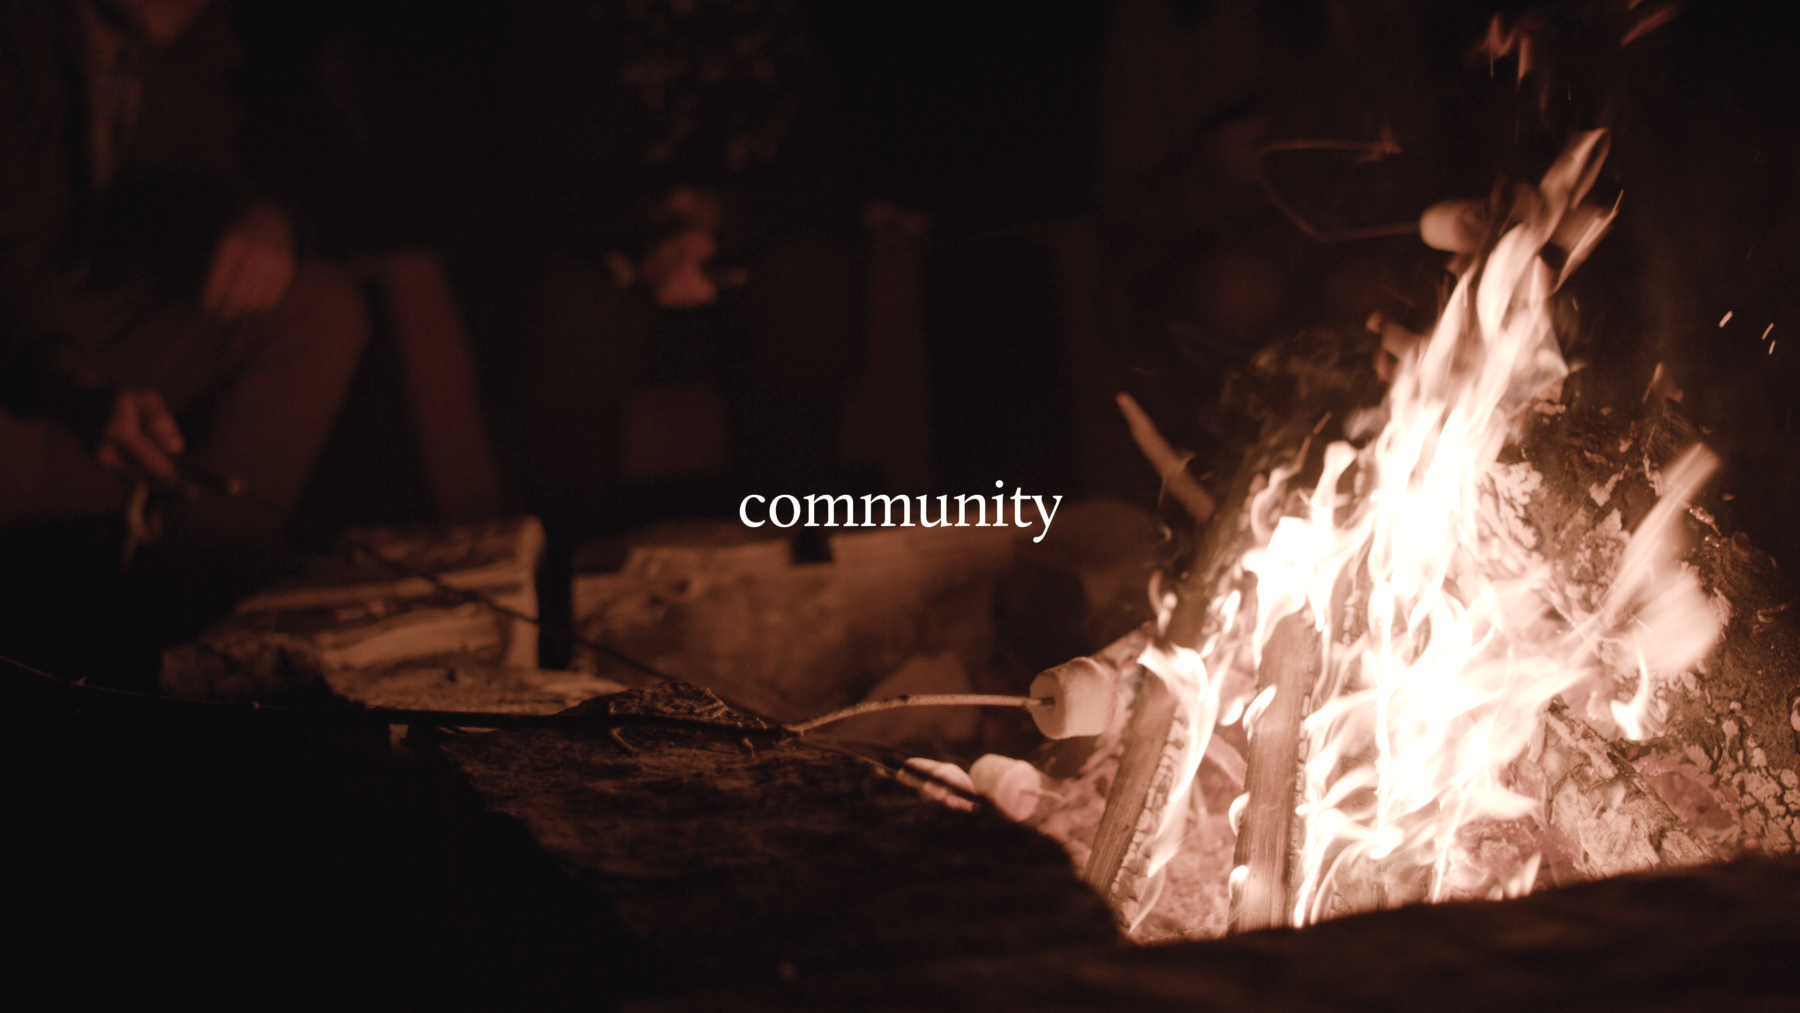 Sermon Series Ideas #6: Community